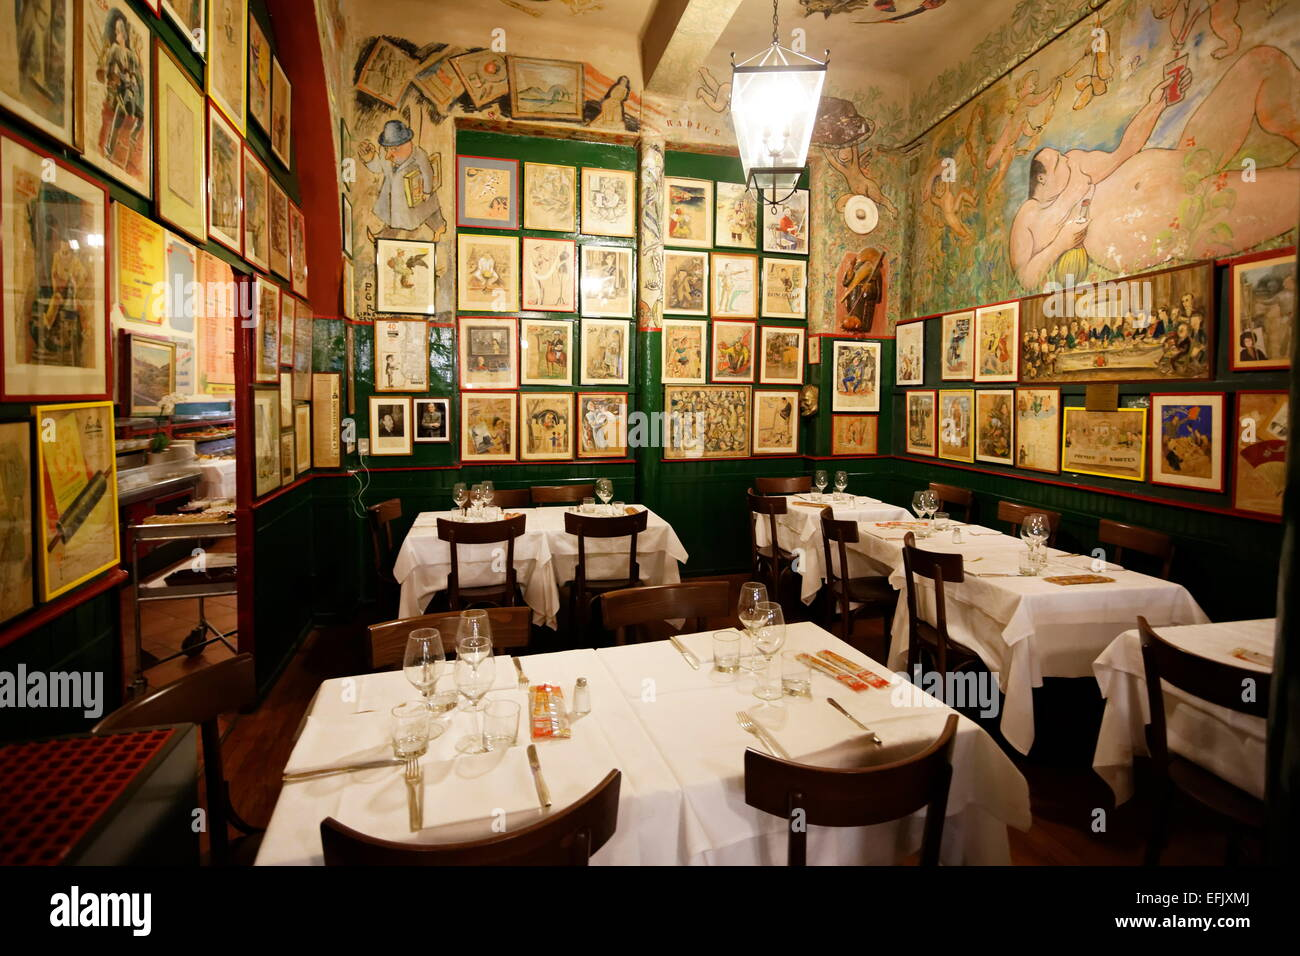 traditional italian restaurant milan lombardy italy stock photo 78477410 alamy. Black Bedroom Furniture Sets. Home Design Ideas